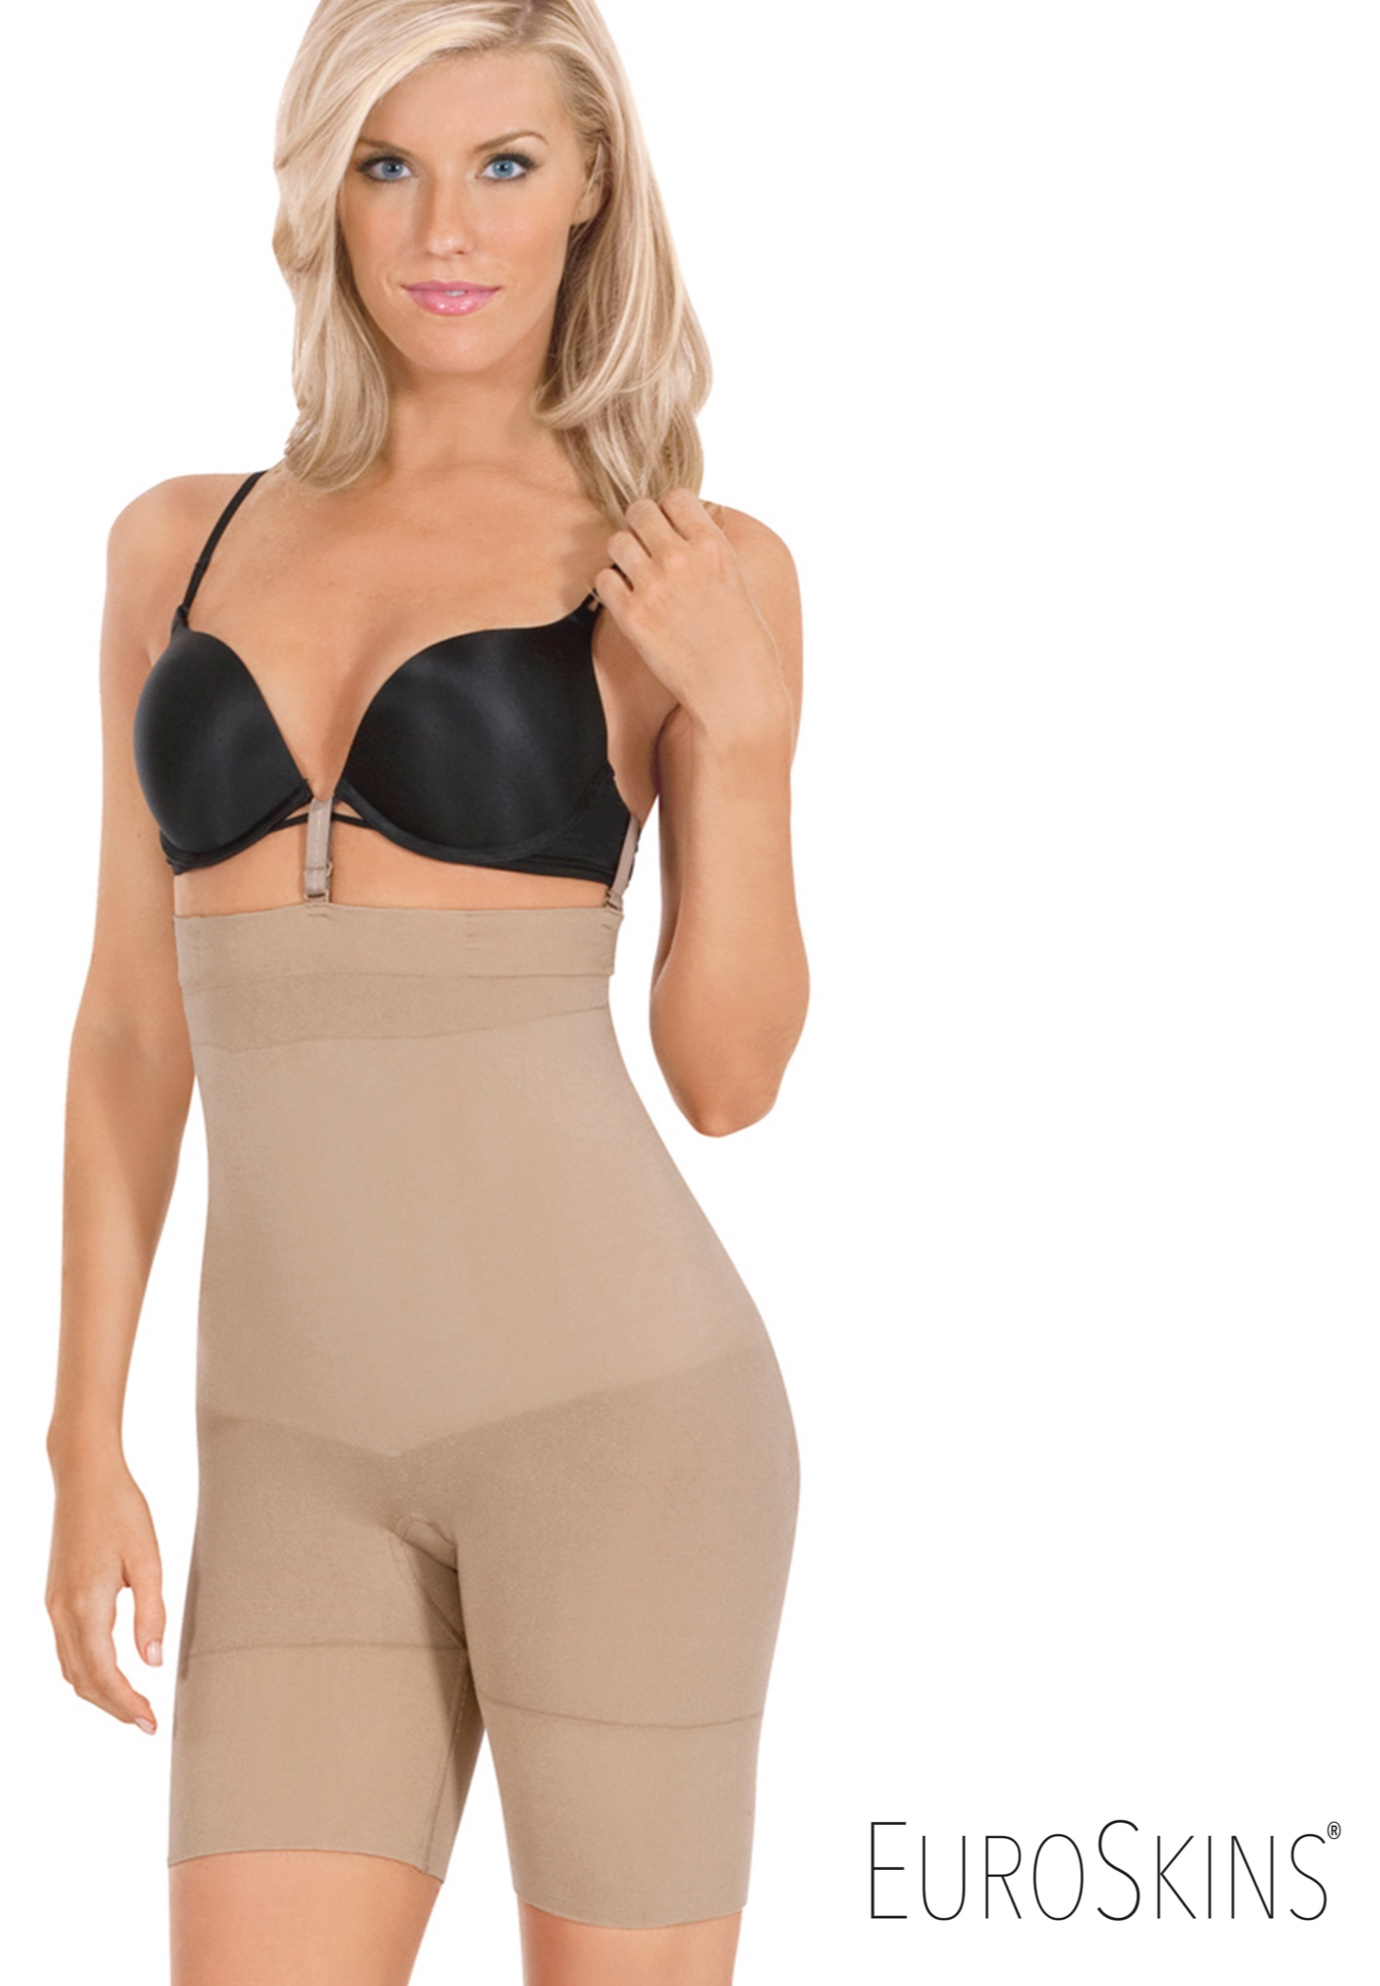 Euroskins High Waist Boxer Shaper,